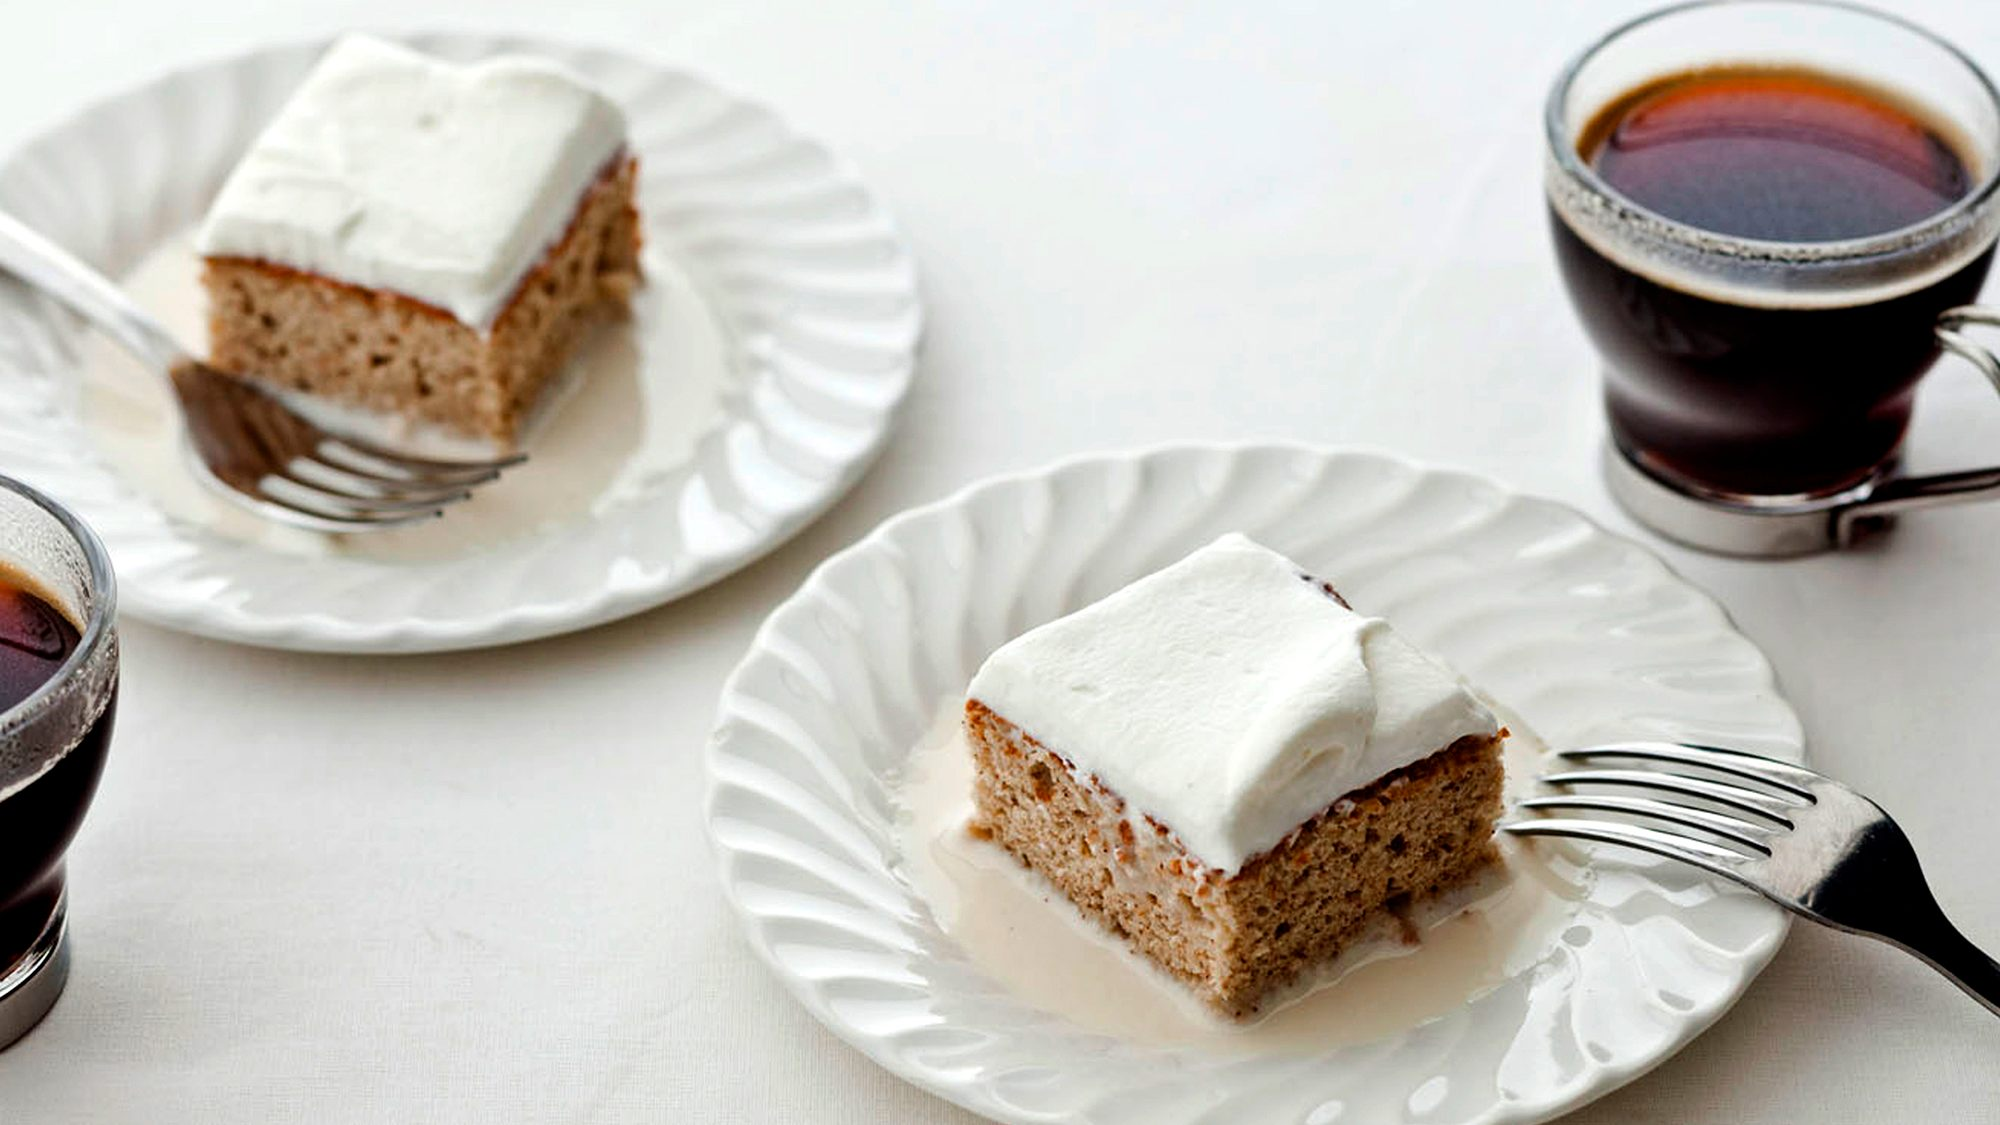 McCormick Gourmet Coconut Tres Leches Cake